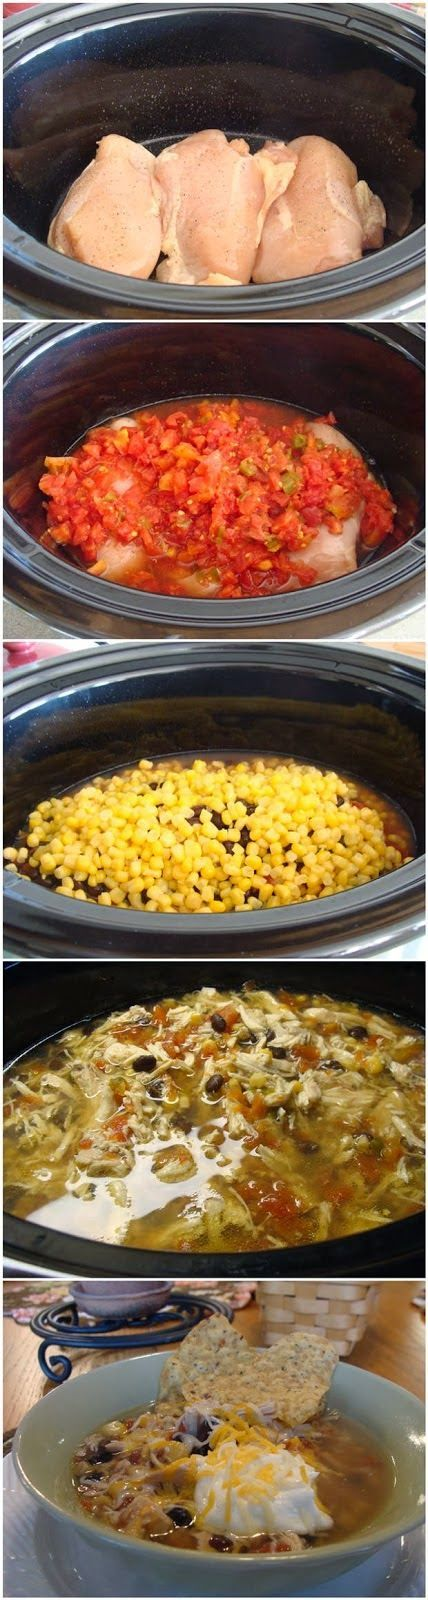 Ingredients   3-4 boneless, skinless chicken breasts  2 small cans Ro-Tel (I use the Original flavor.)  1 15 oz. can Bush's Beans black be...